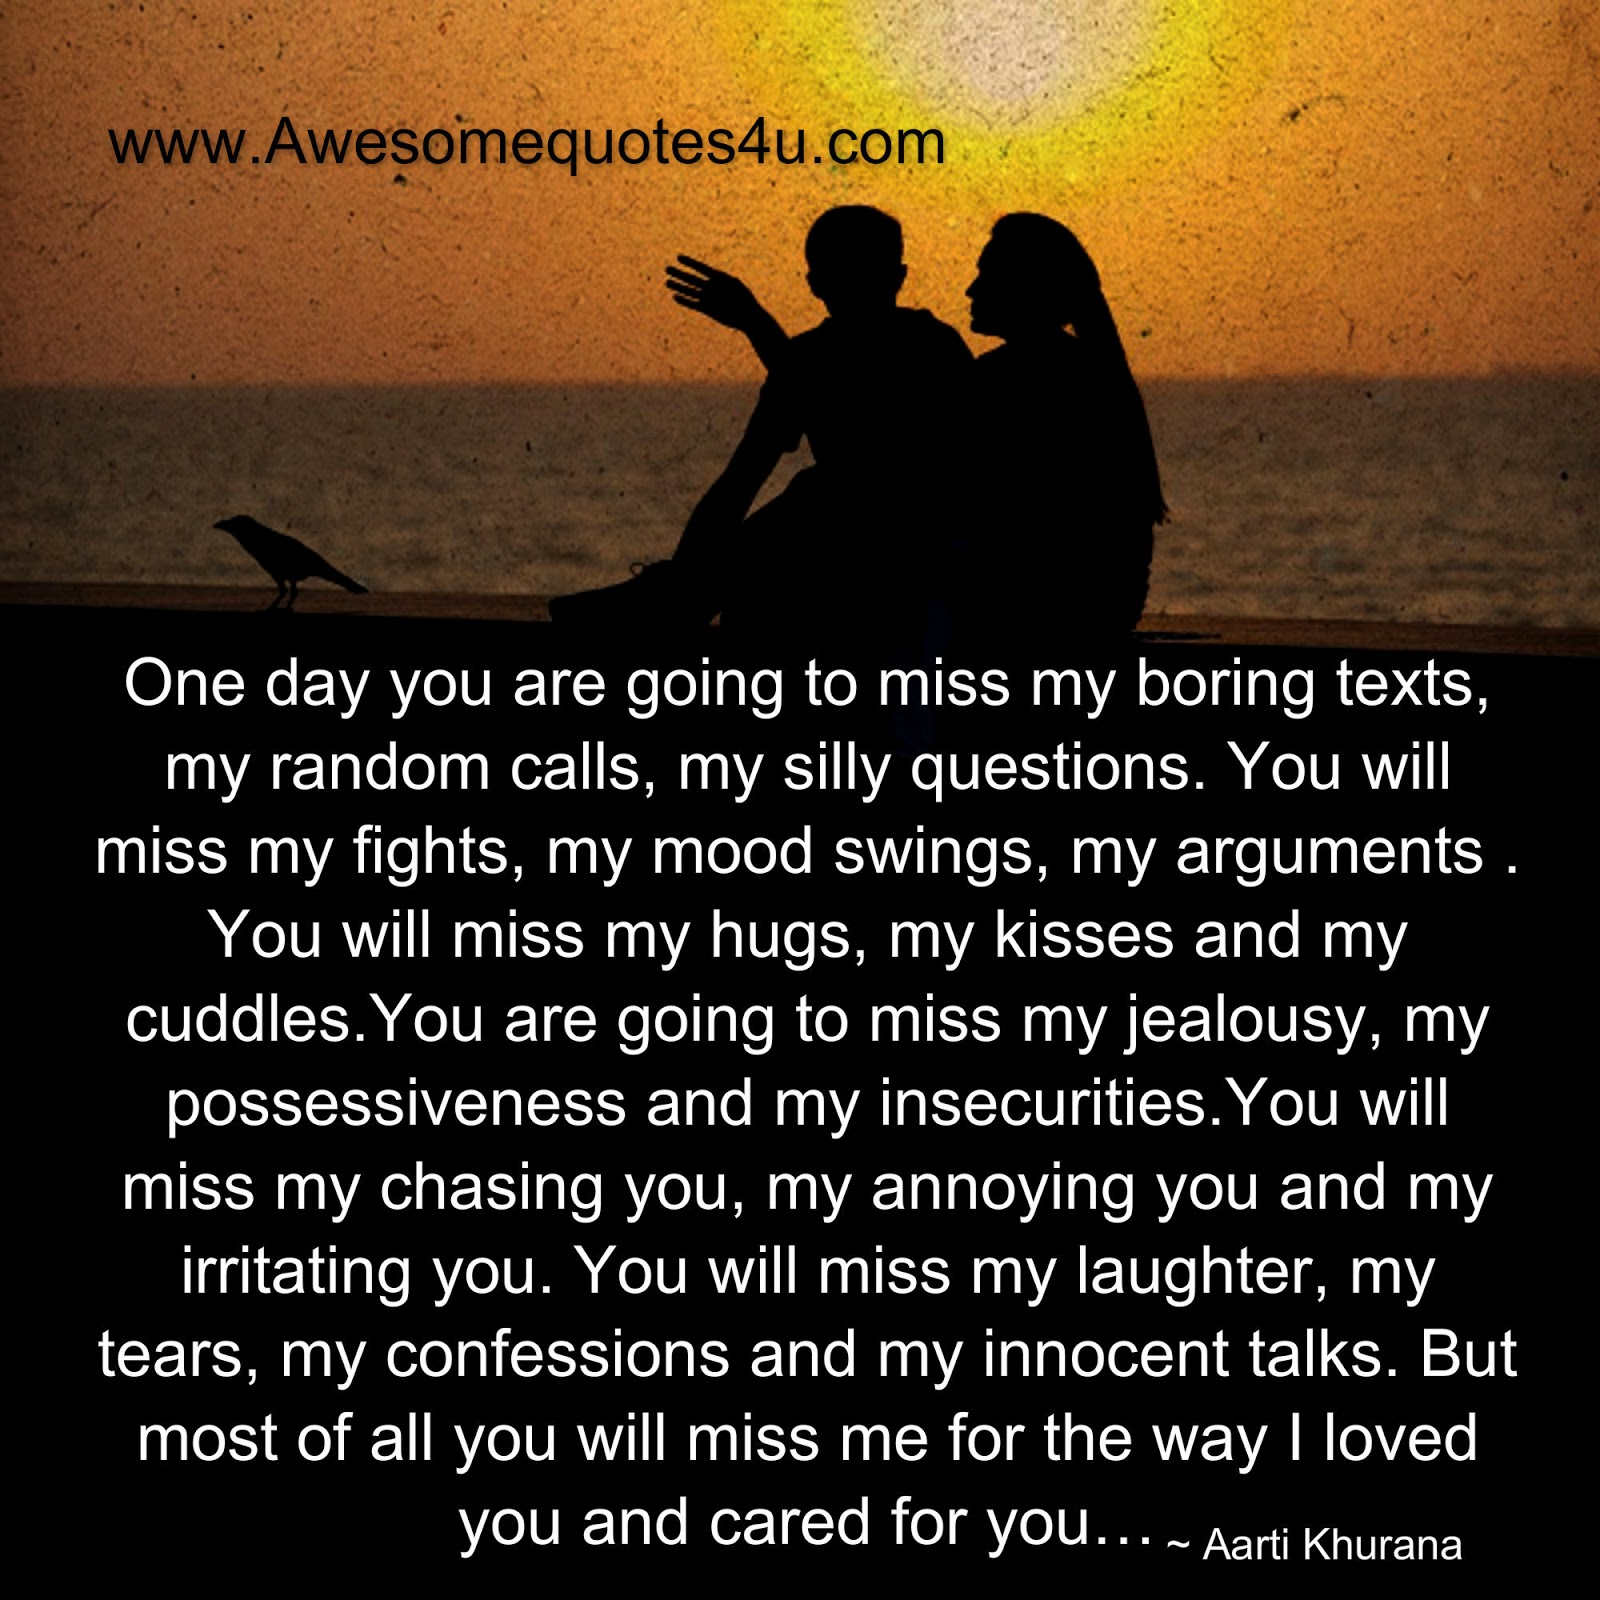 Awesome Quotes: You Will Miss Me.